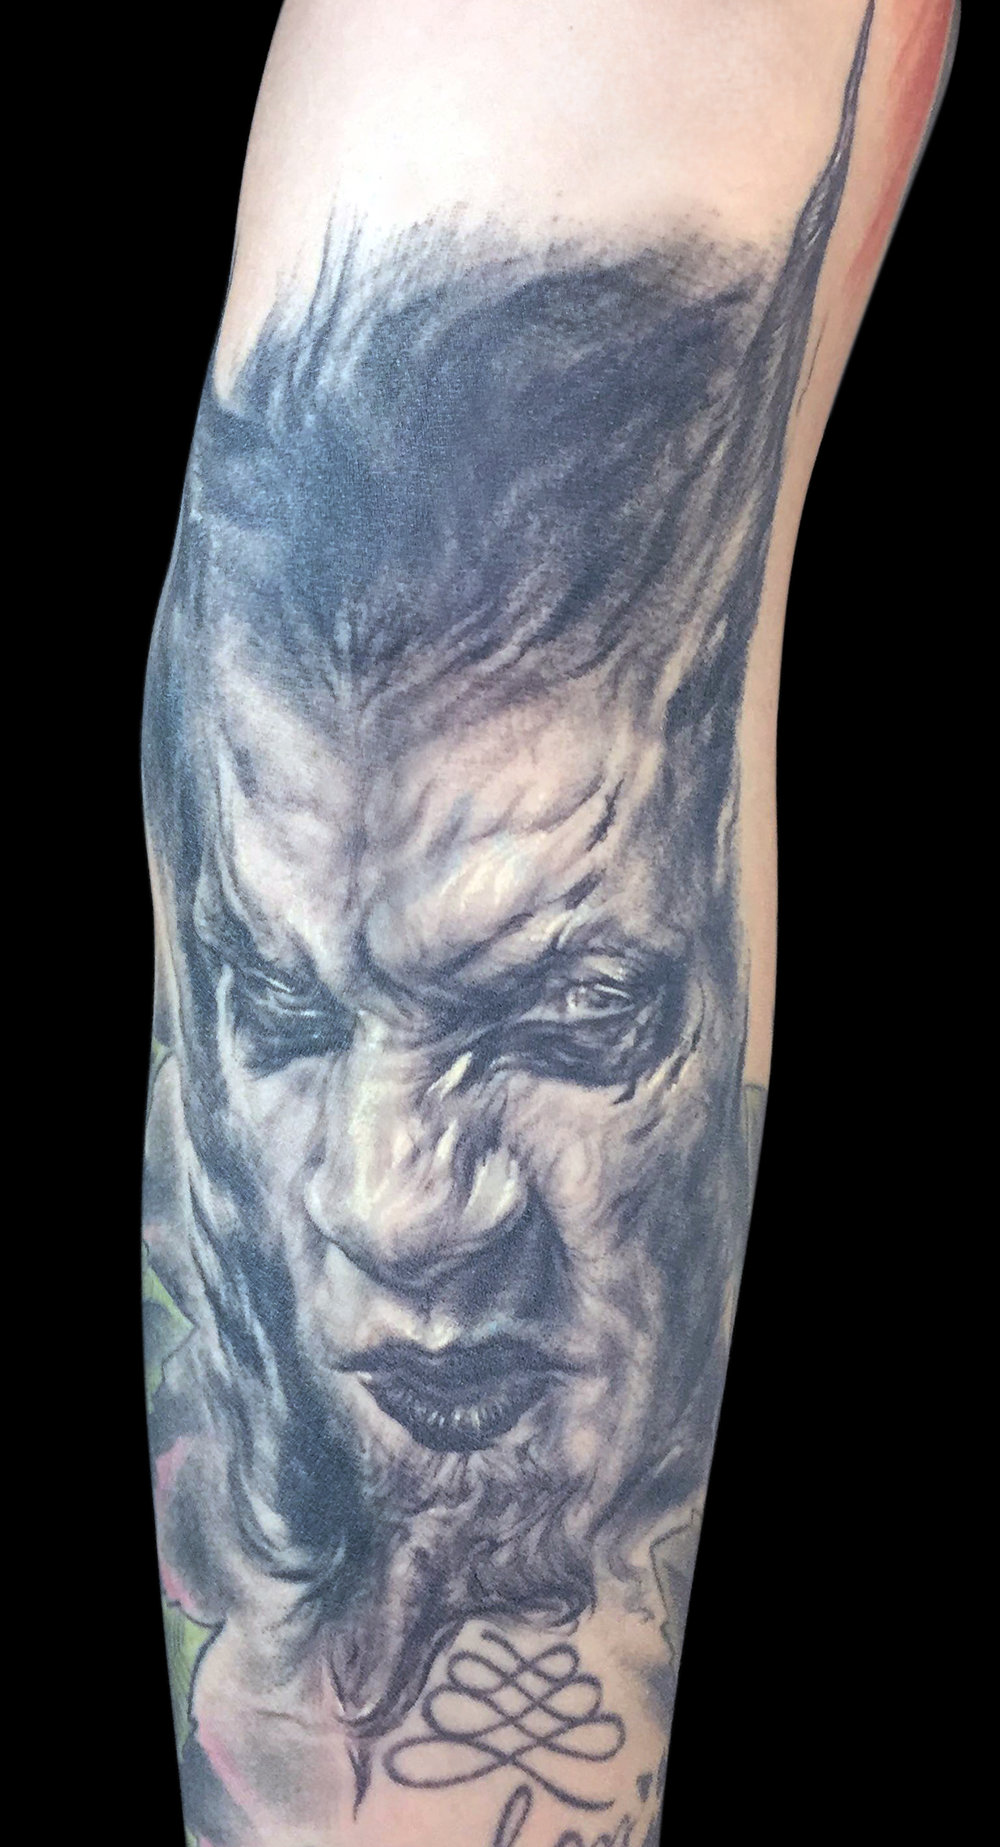 Black and Grey Demon Tattoo, tattooed at Barcelona Tattoo Expo (healed)